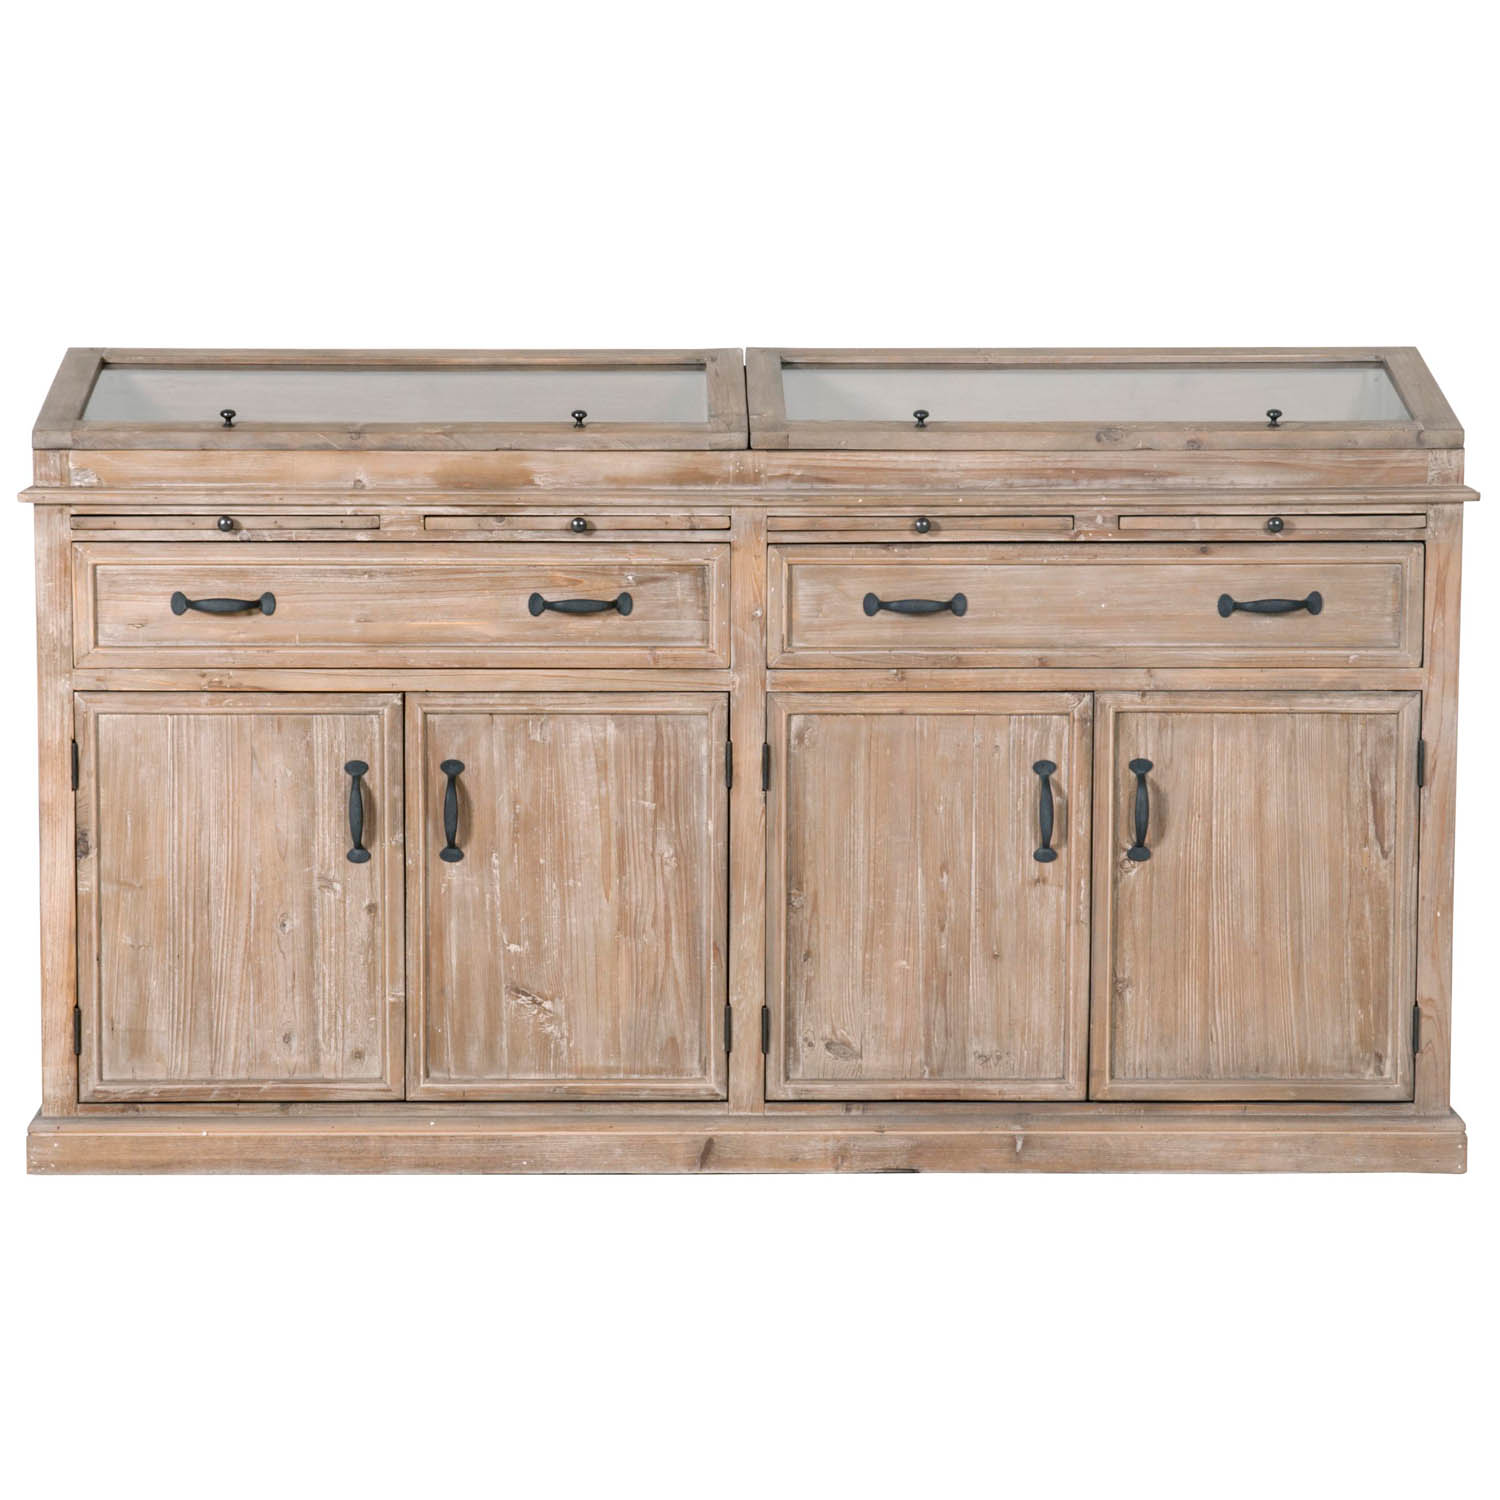 Hamilton Sideboard - Smoke Gray - 1